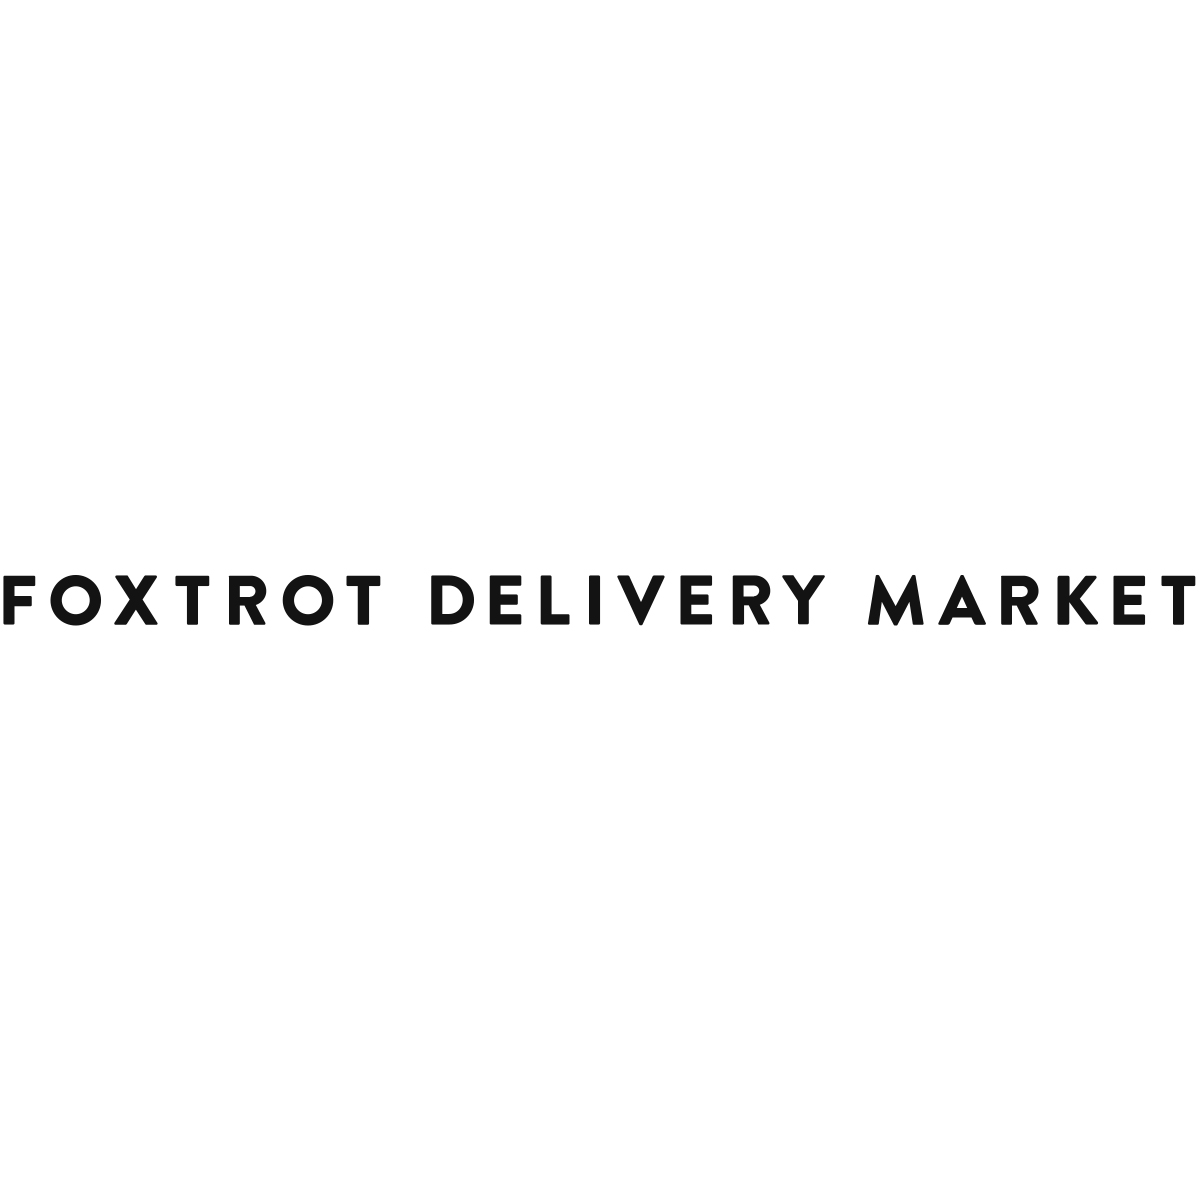 Foxtrot Delivery Market